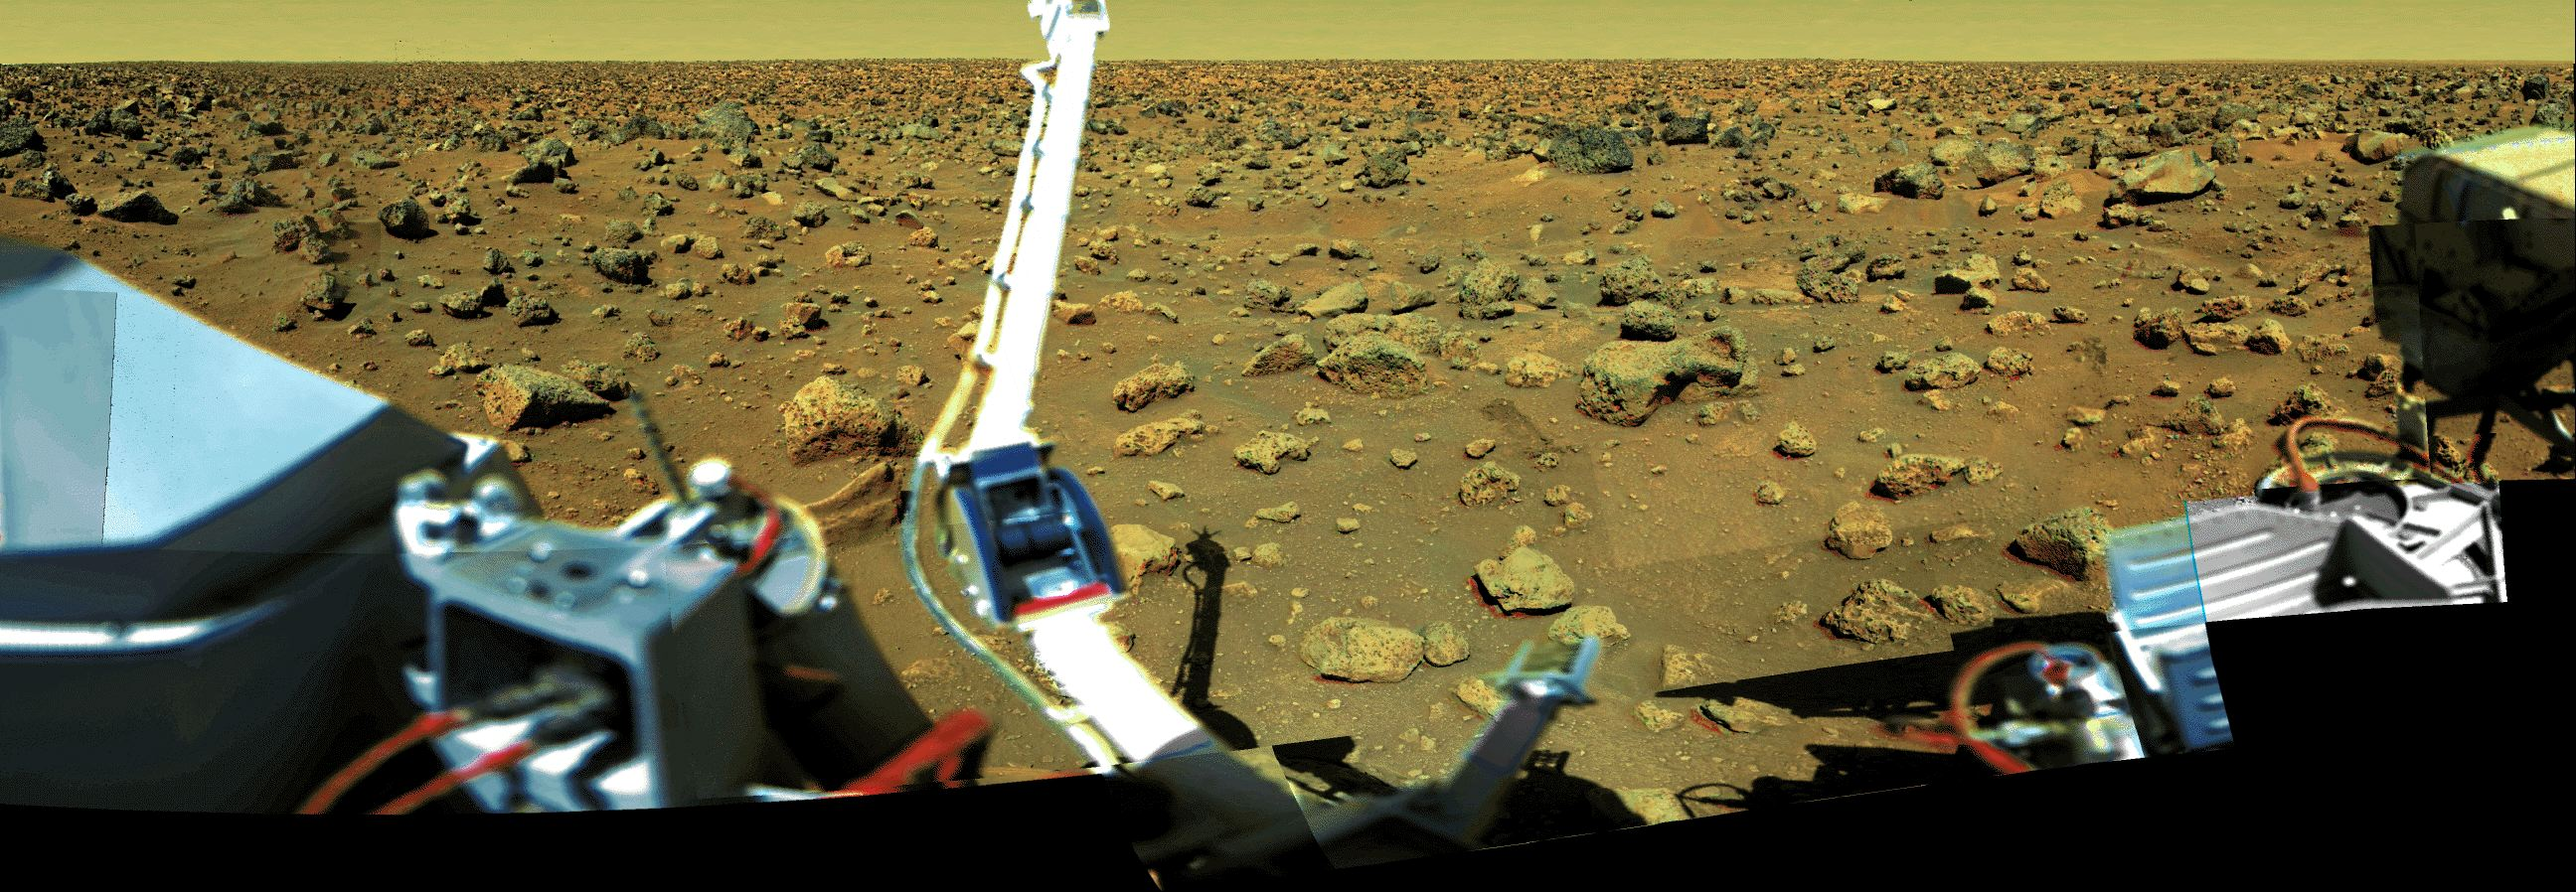 images from mars viking 2 - photo #6